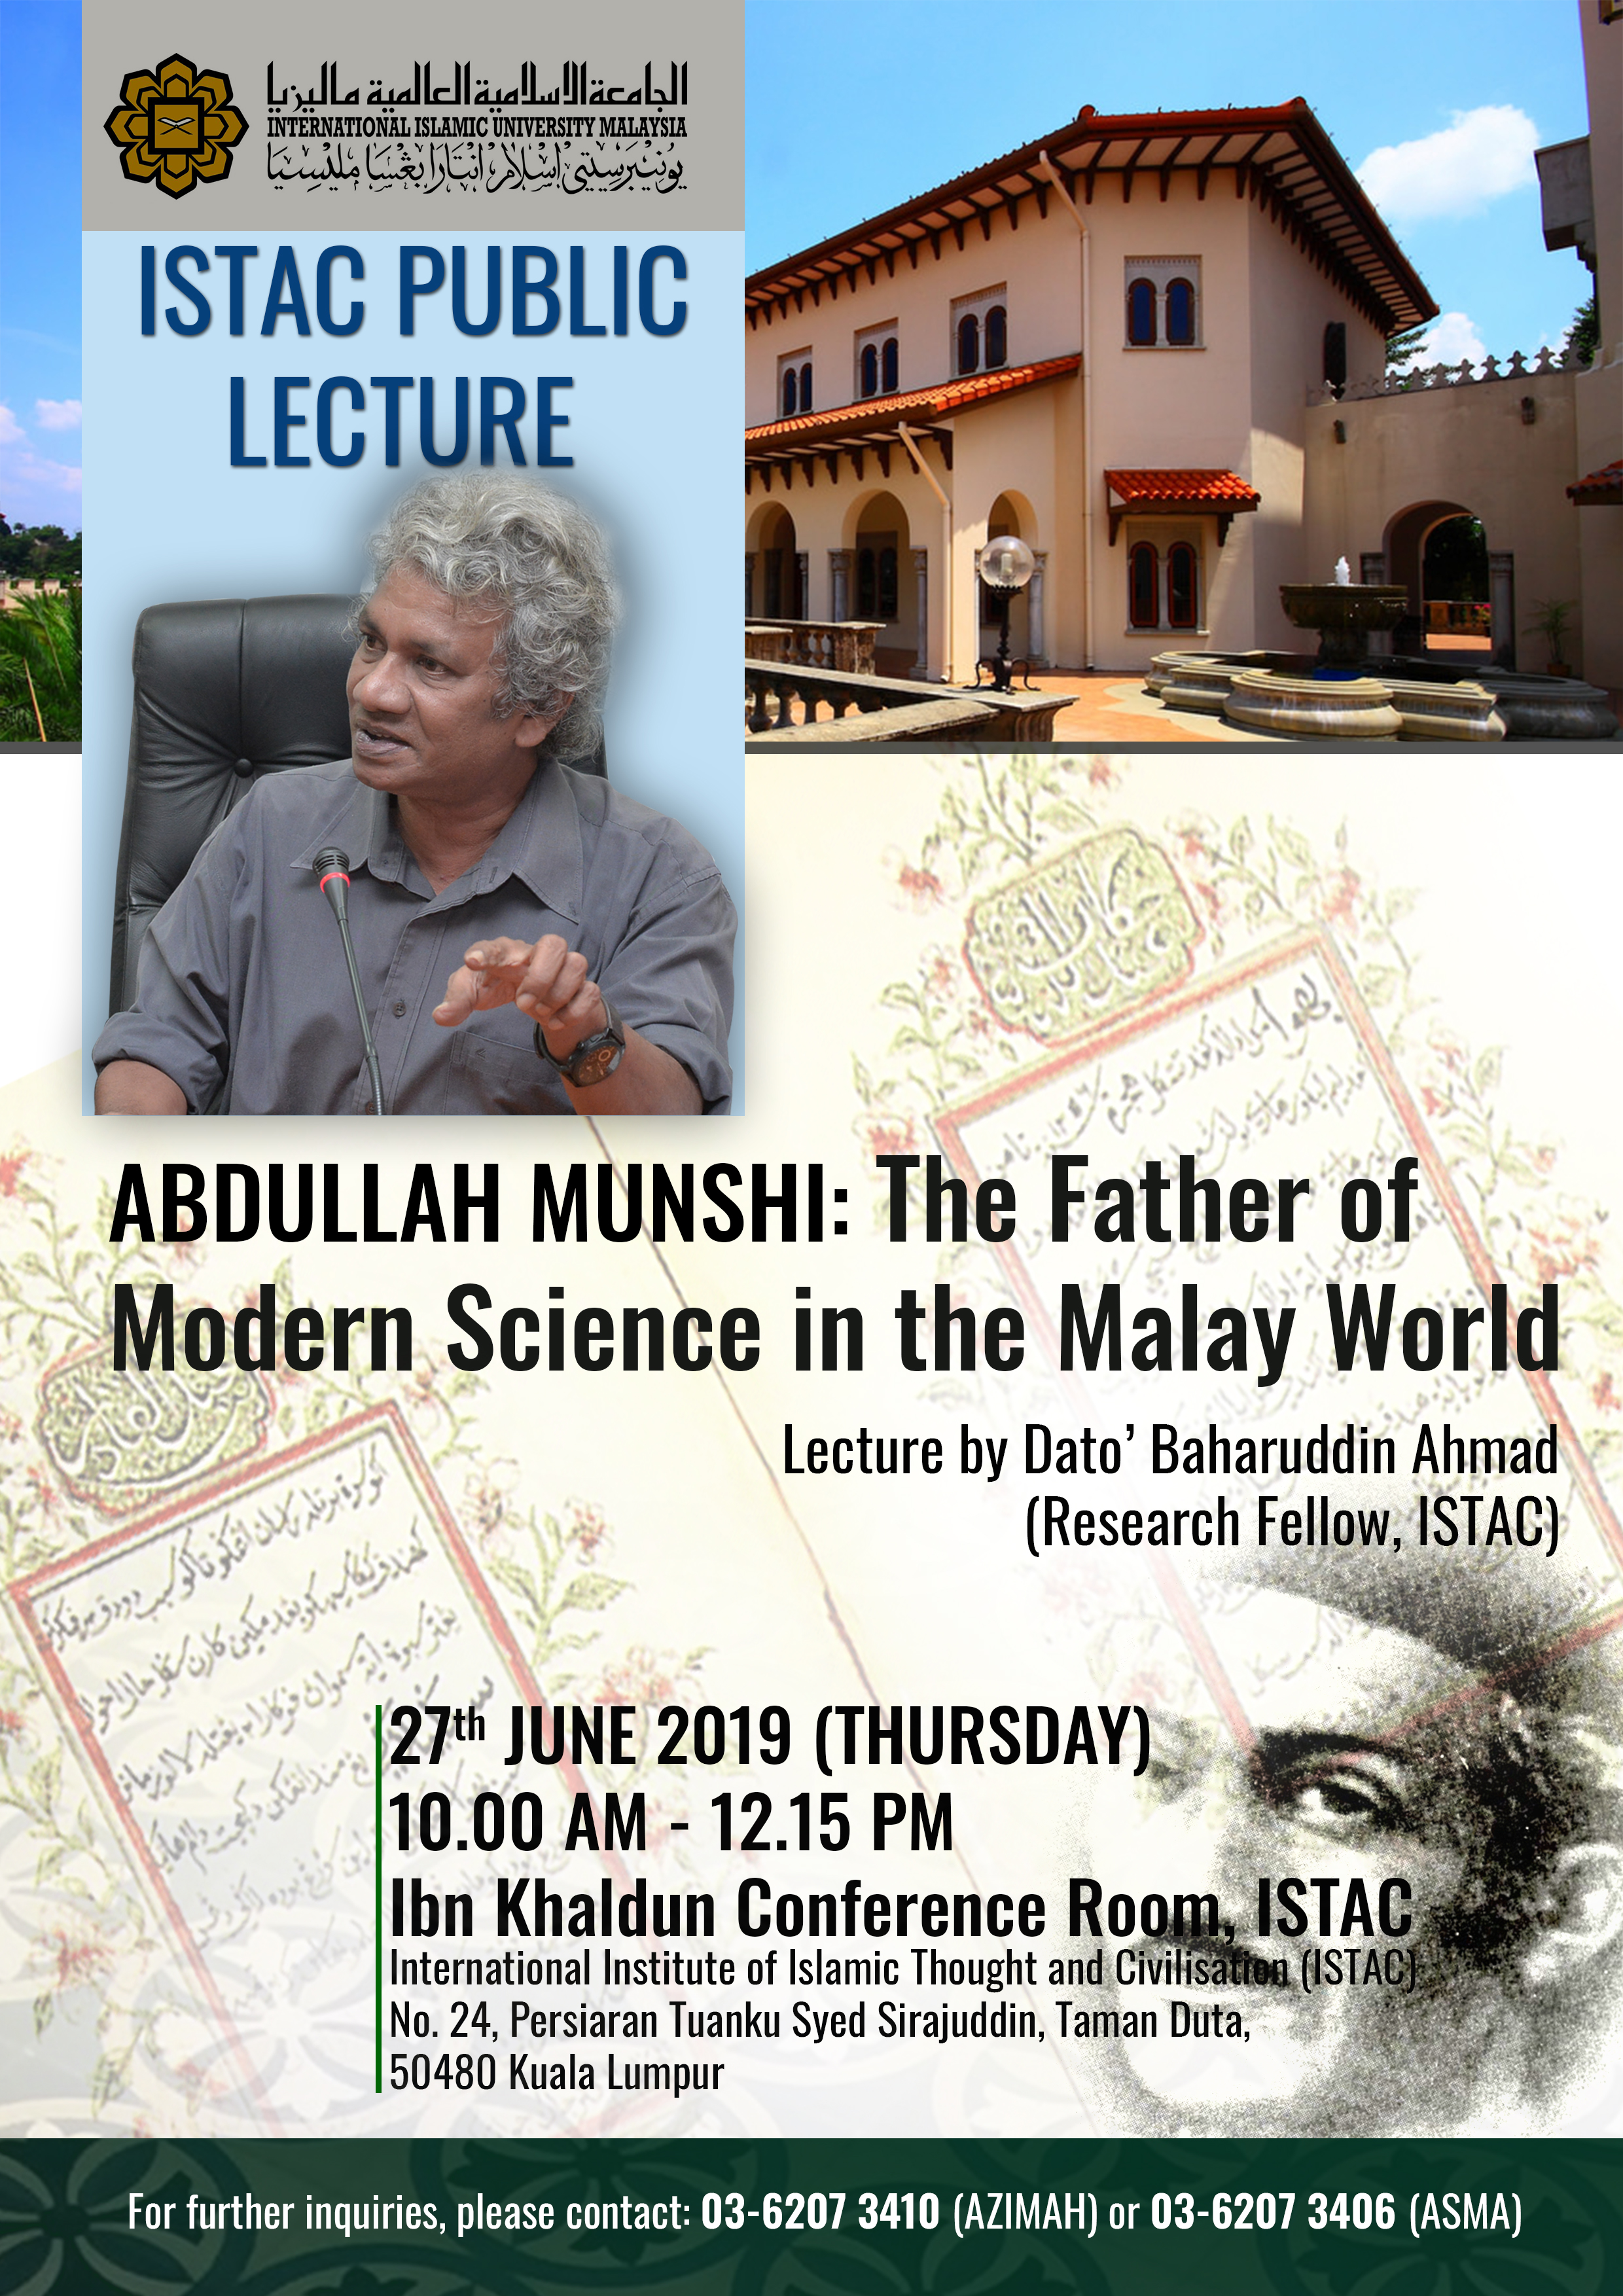 ISTAC PUBLIC LECTURE - ABDULLAH MUNSHI : THE FATHER OF MODERN SCIENCE IN THE MALAY WORLD